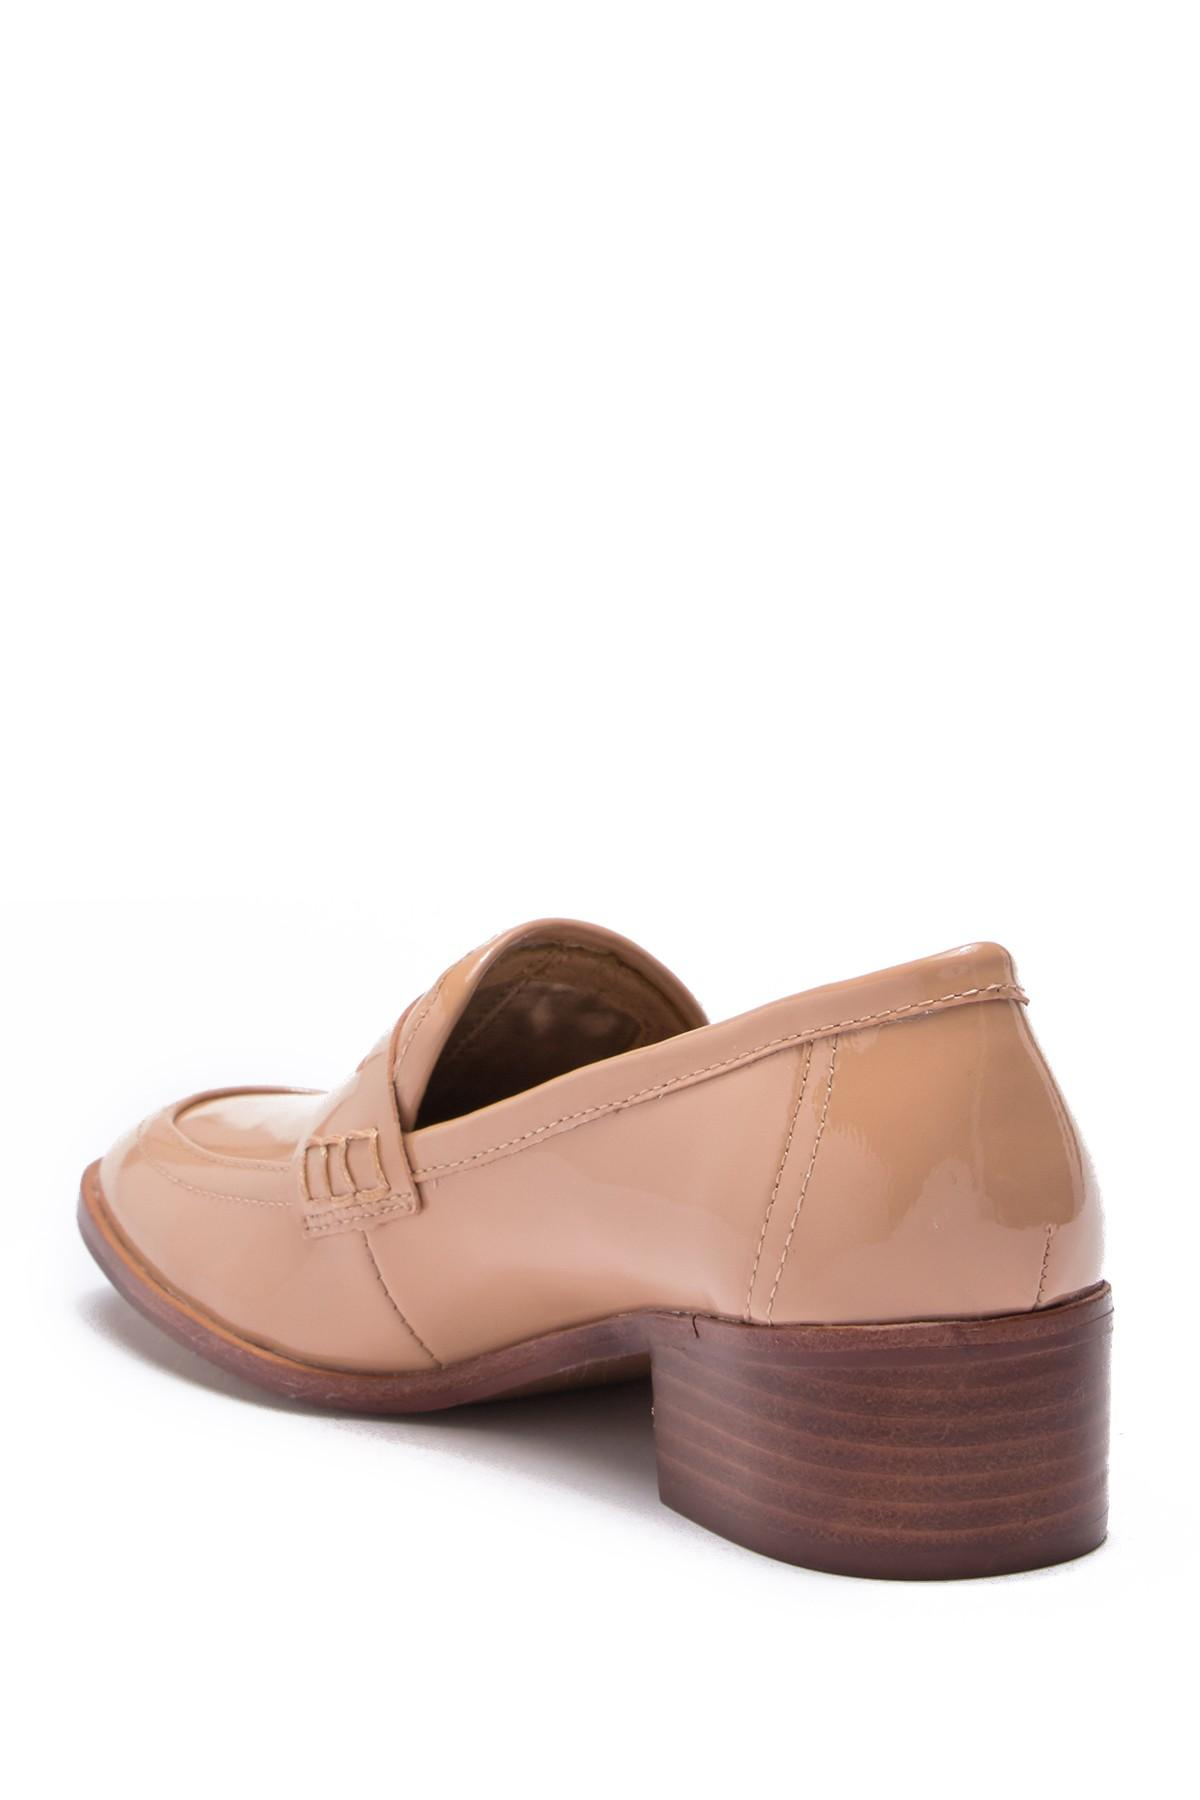 34dba2854f8 Steven by Steve Madden - Multicolor Iona Leather Penny Loafer - Lyst. View  fullscreen